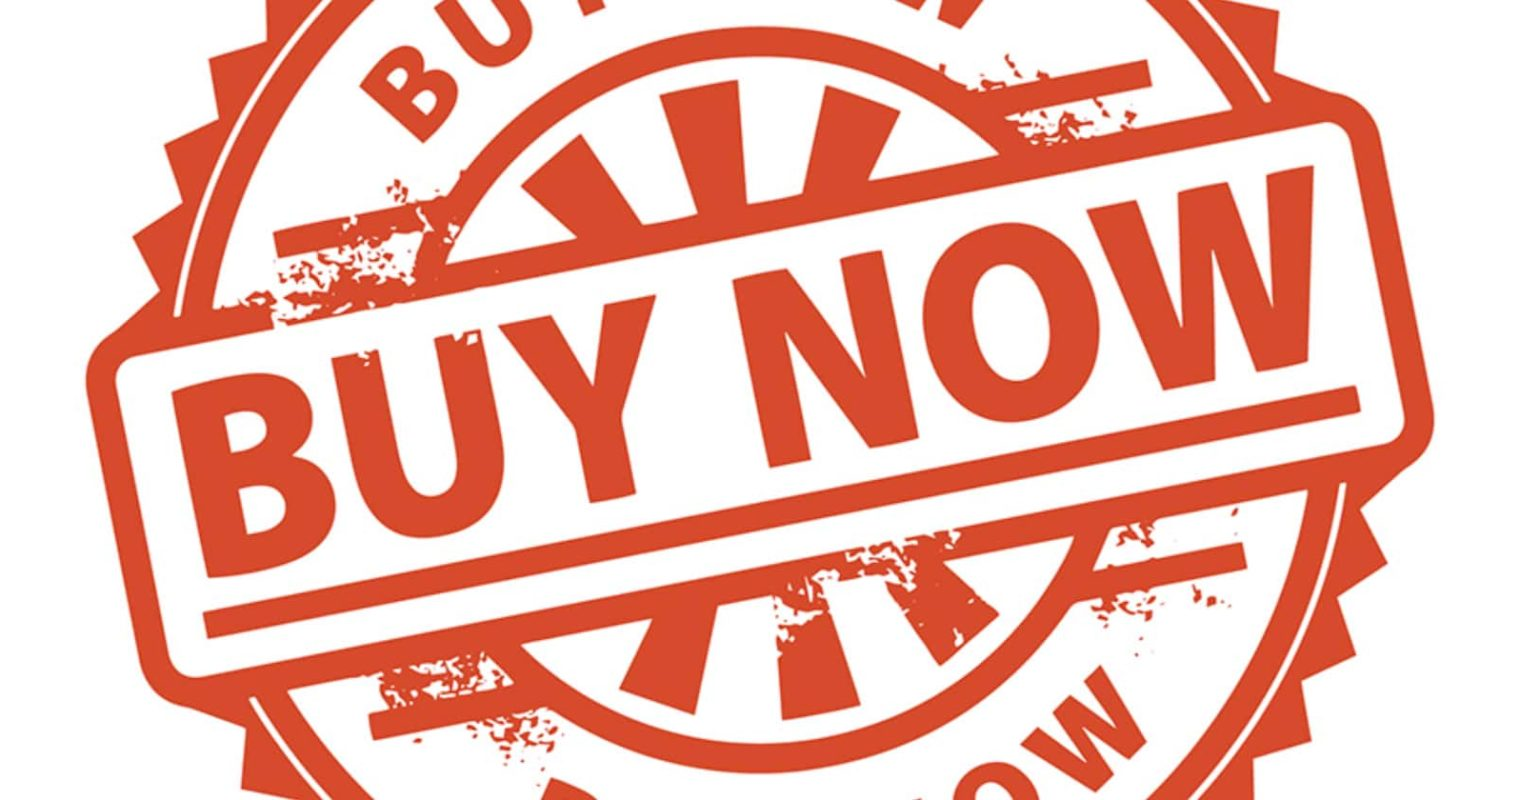 Google Introduces 'Buy' Button in Beta Program